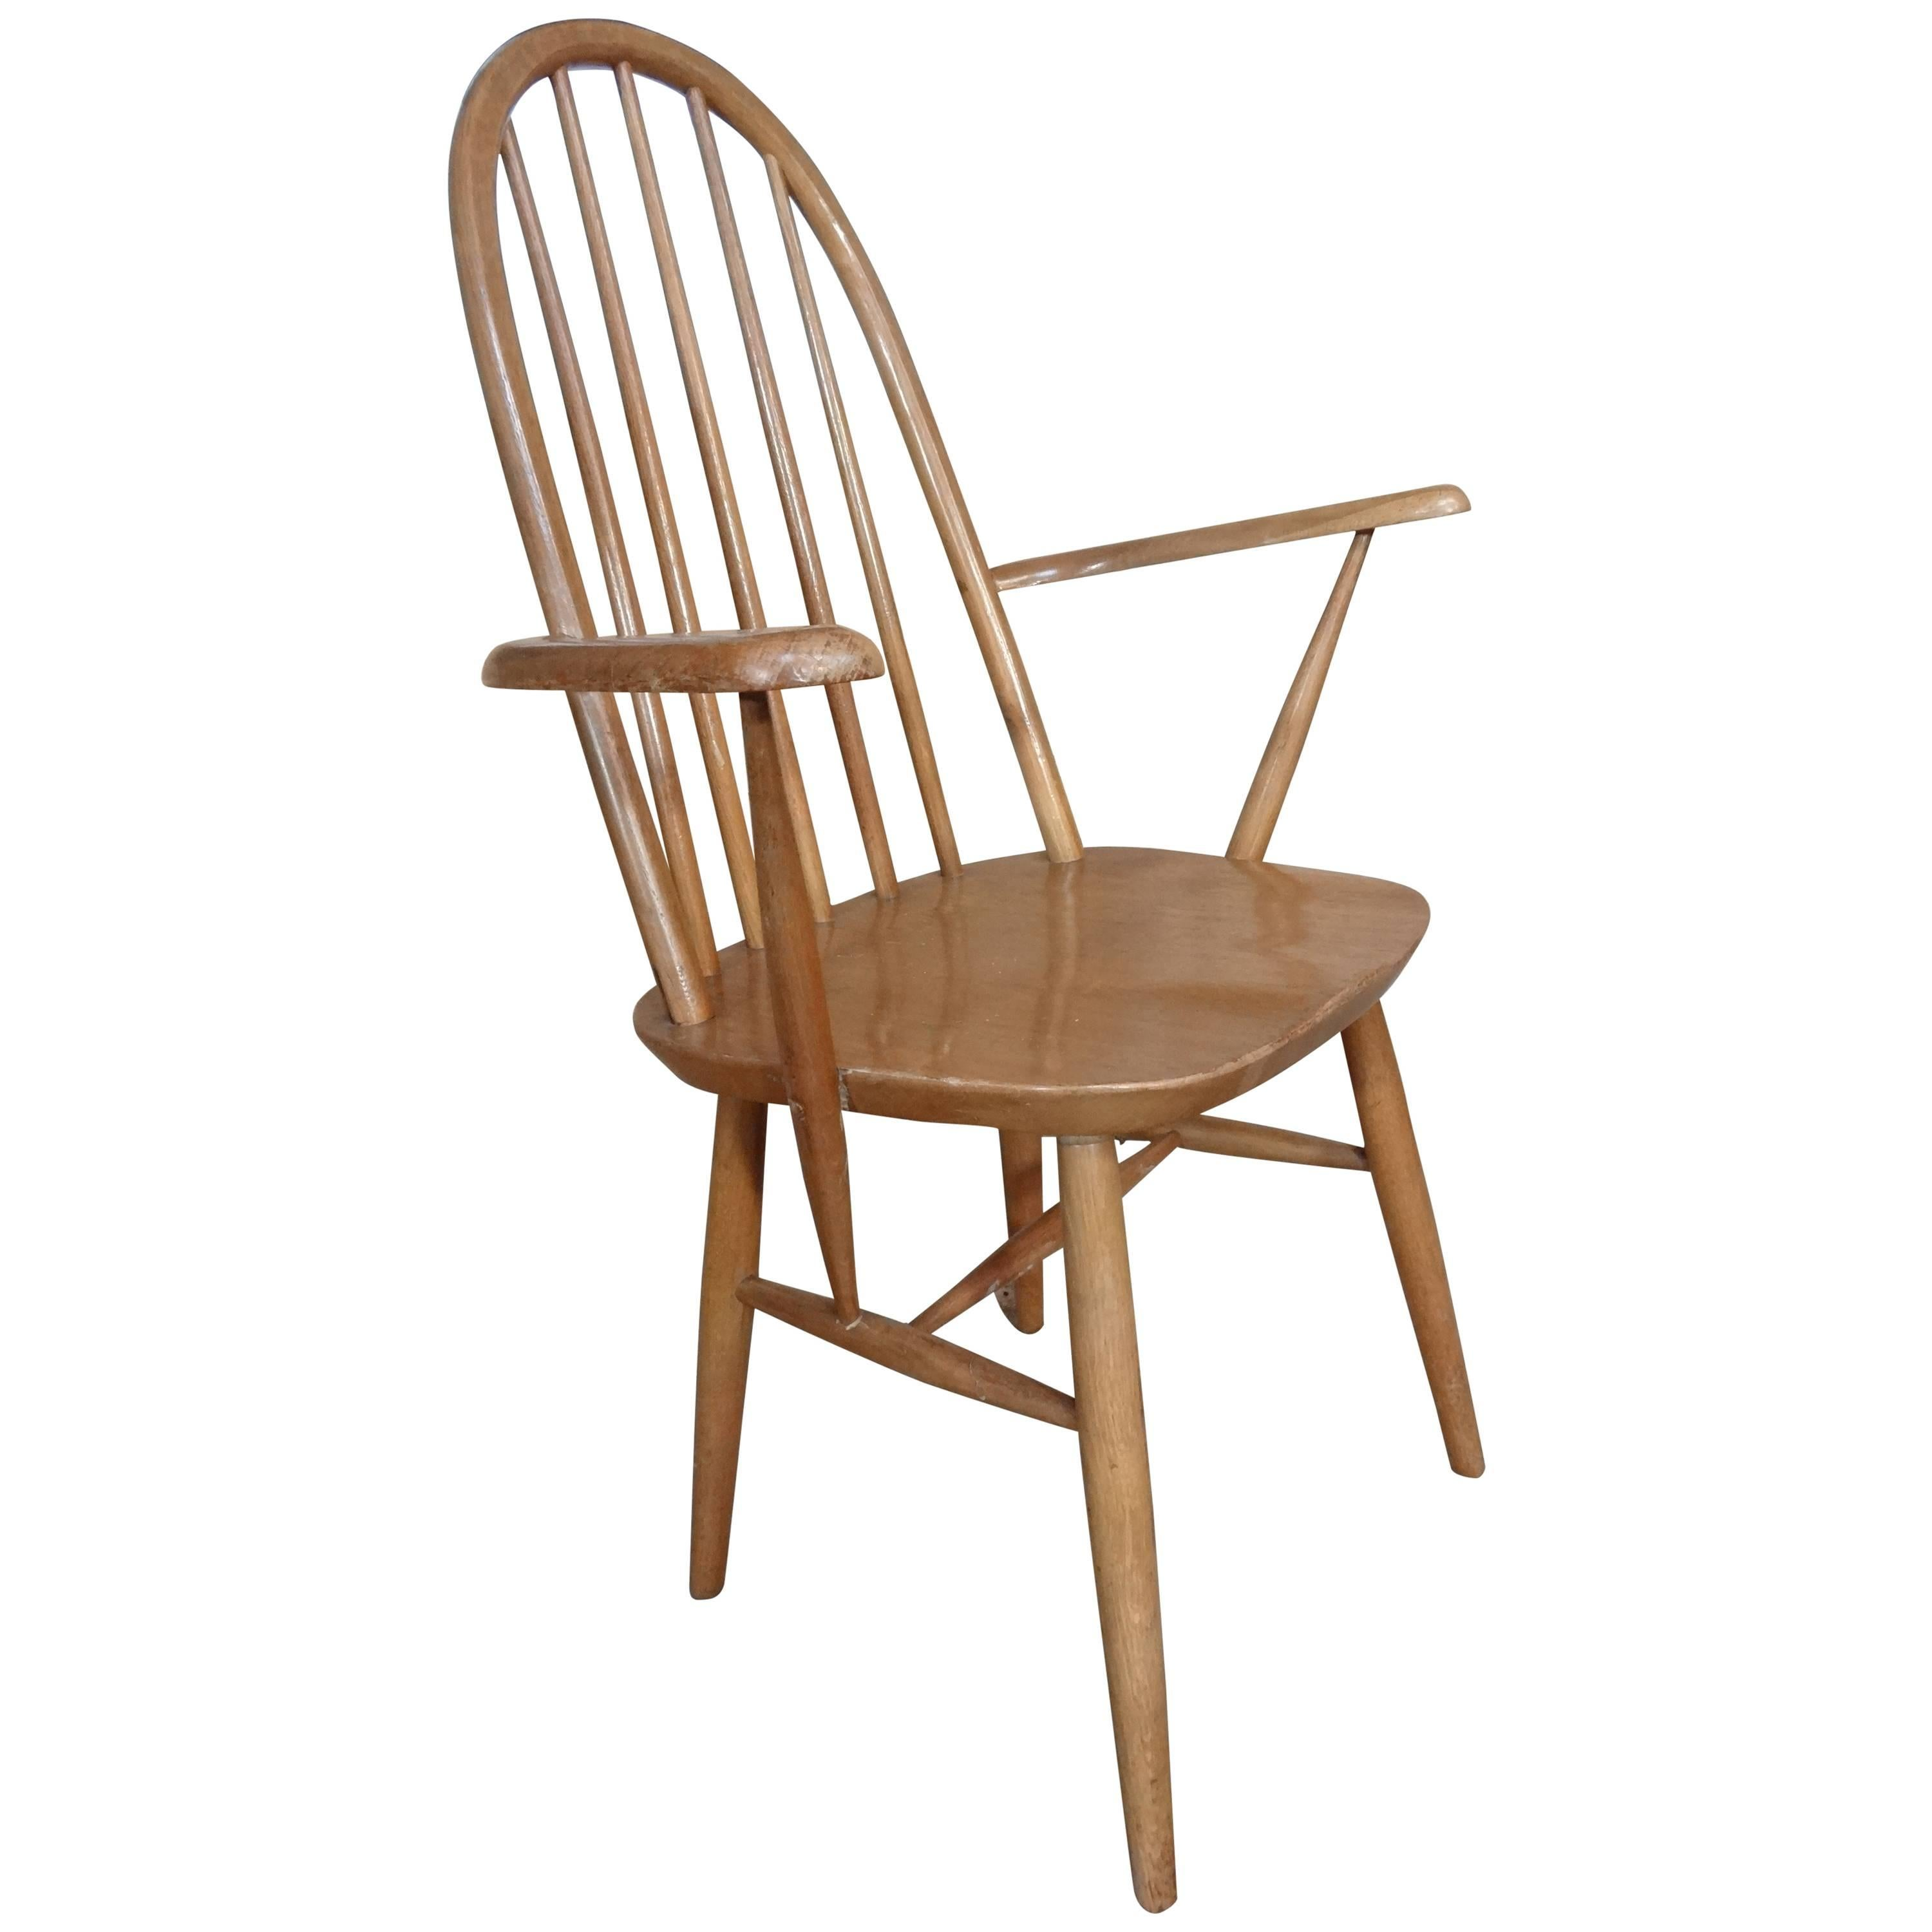 20th Century Retro Vintage Wooden Armchair or Bedroom Chair